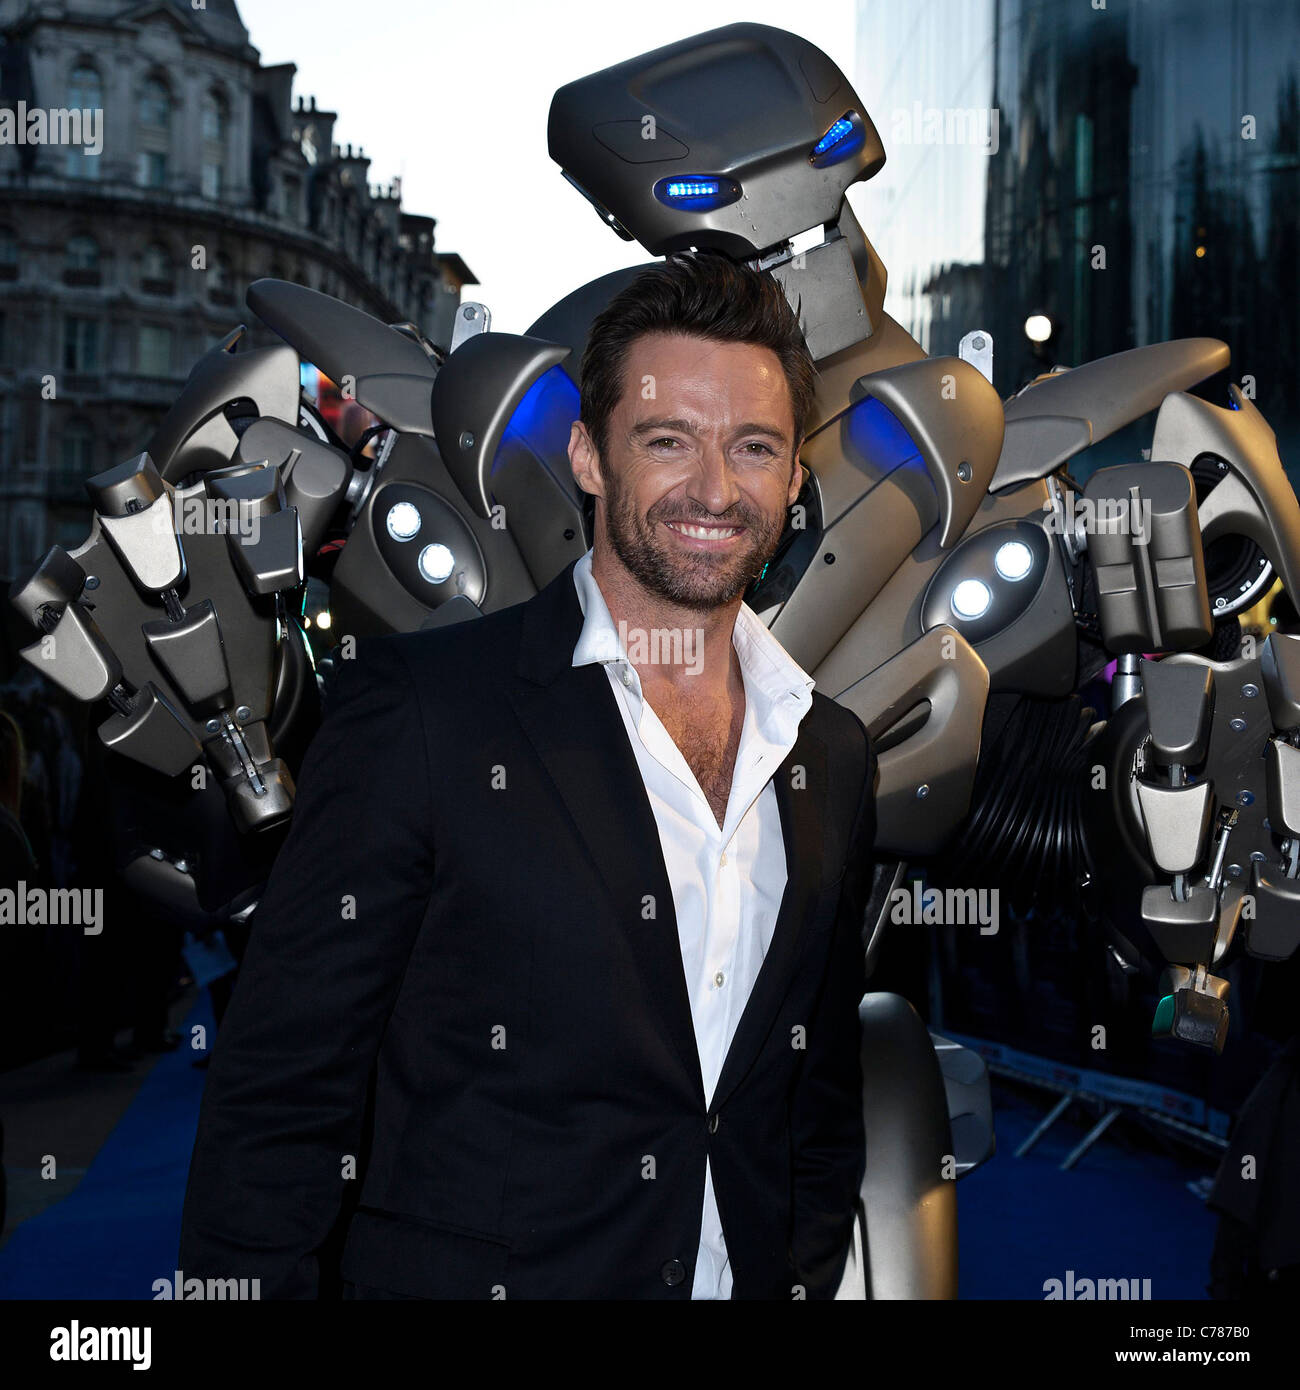 Actor Hugh Jackman attends the UK Premiere of Real Steel at The Empire, Leicester Square, London on 14th September - Stock Image